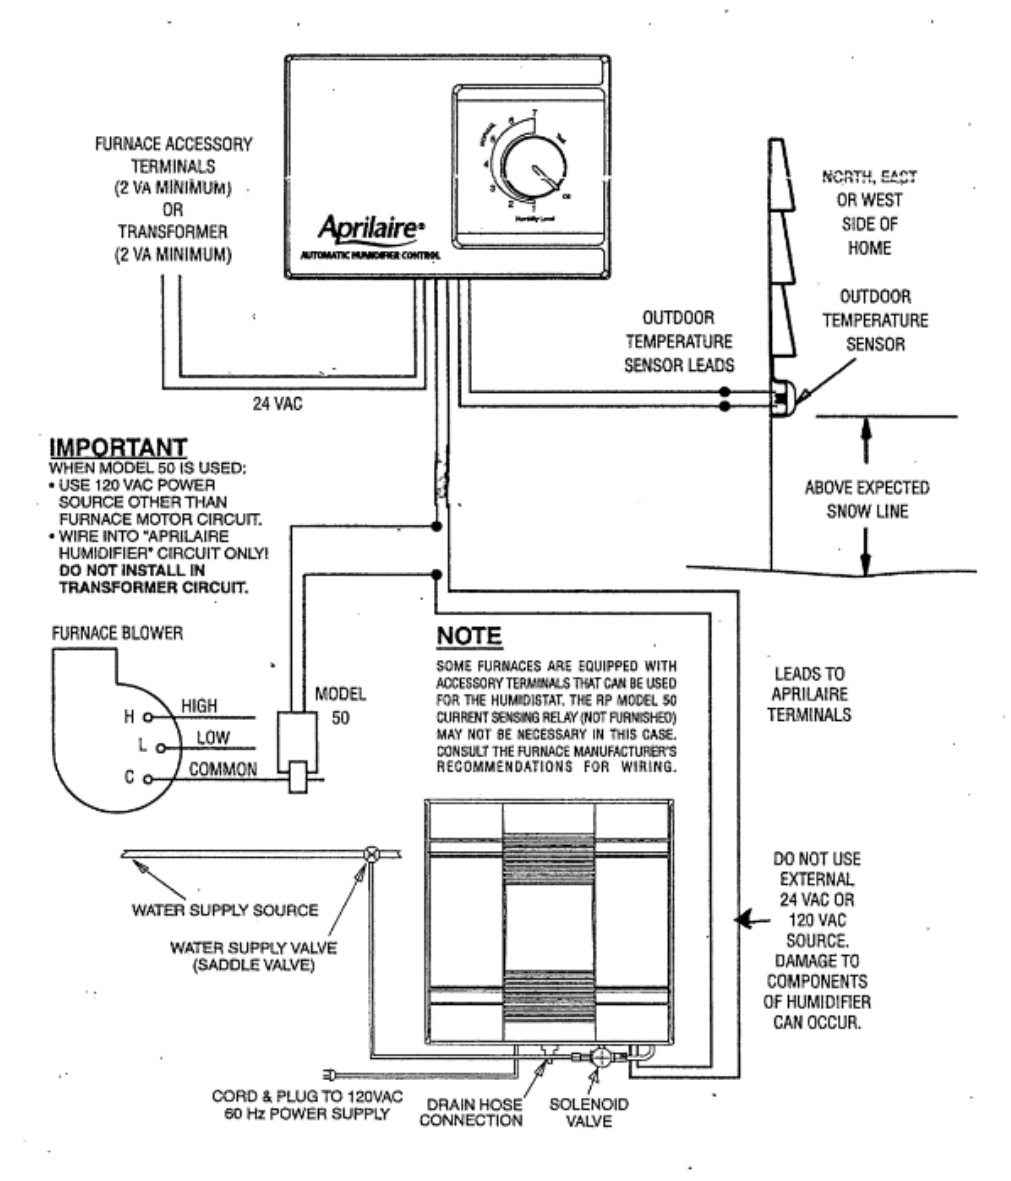 wiring diagram for old honeywell thermostat